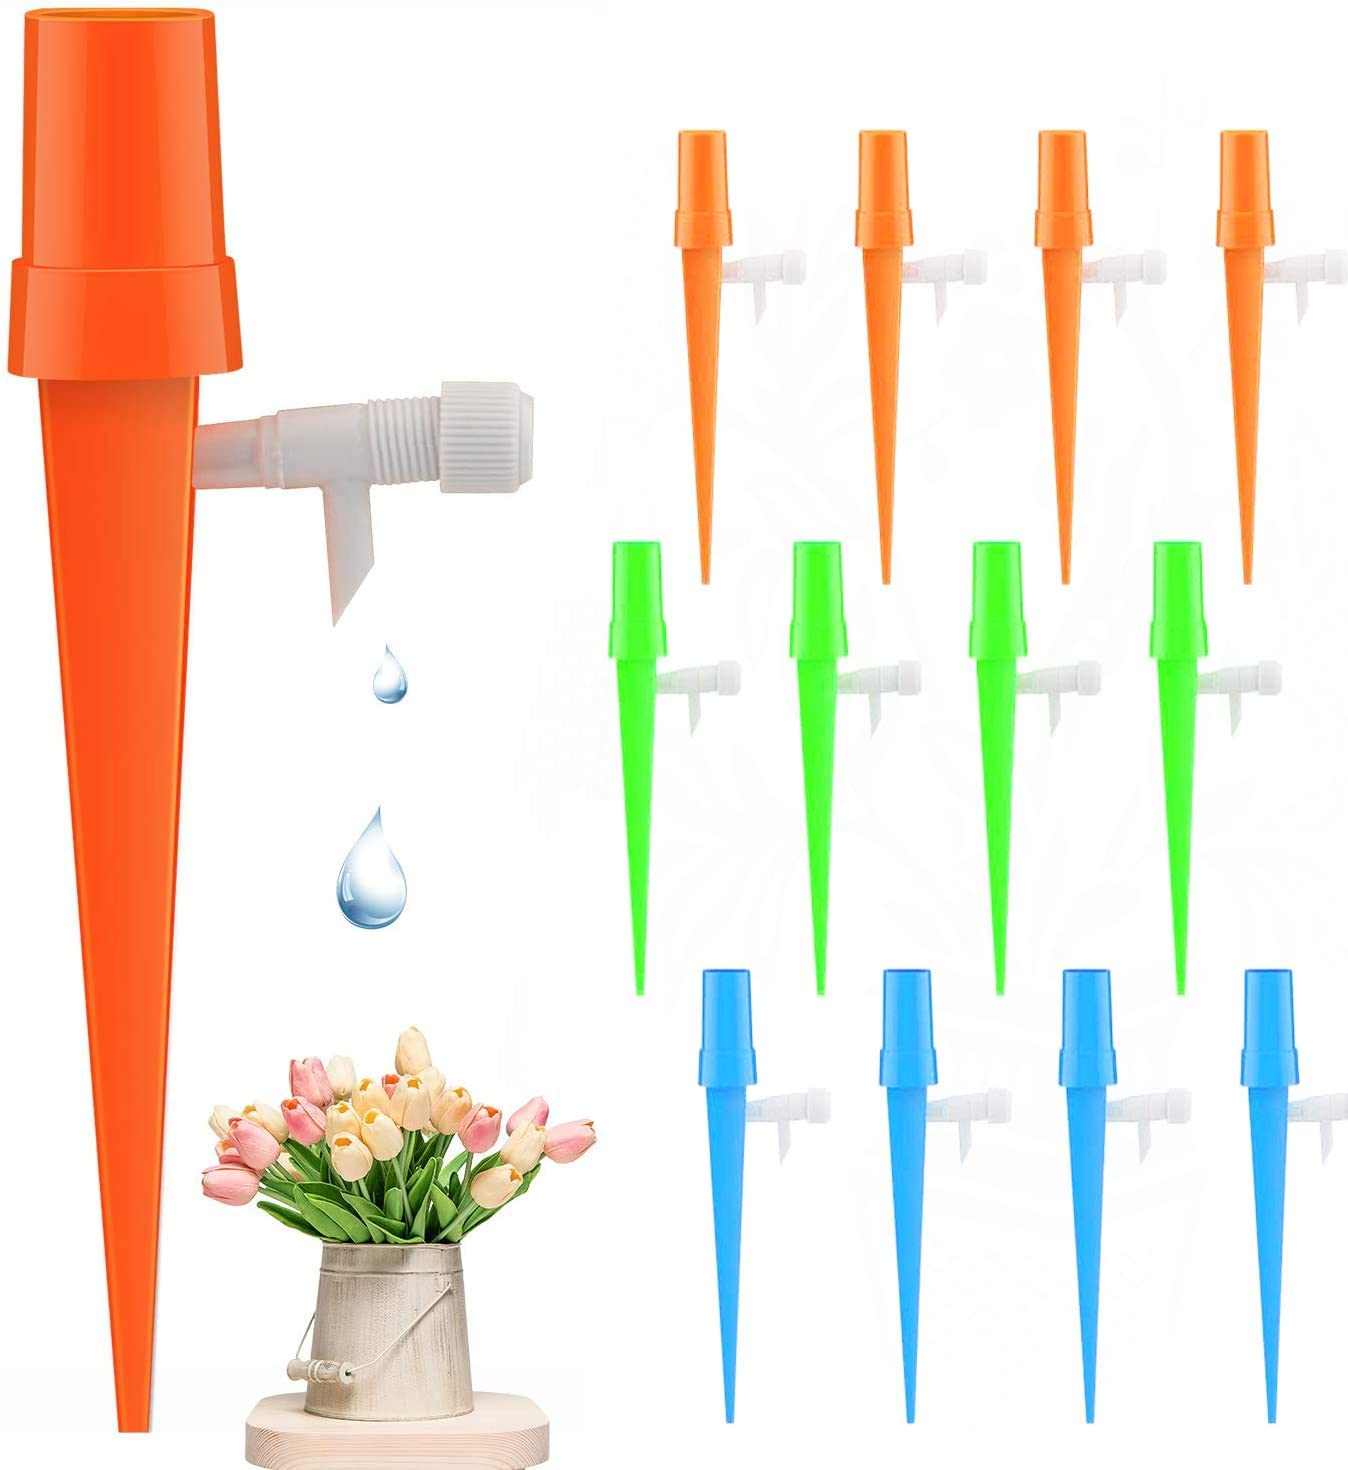 Plant Self Watering Spikes Devices for Plant Watering Devices with Slow Release Control Valve Switch Automatic Irrigation Watering Drip System for Potted Plant Flower (12 Pack)